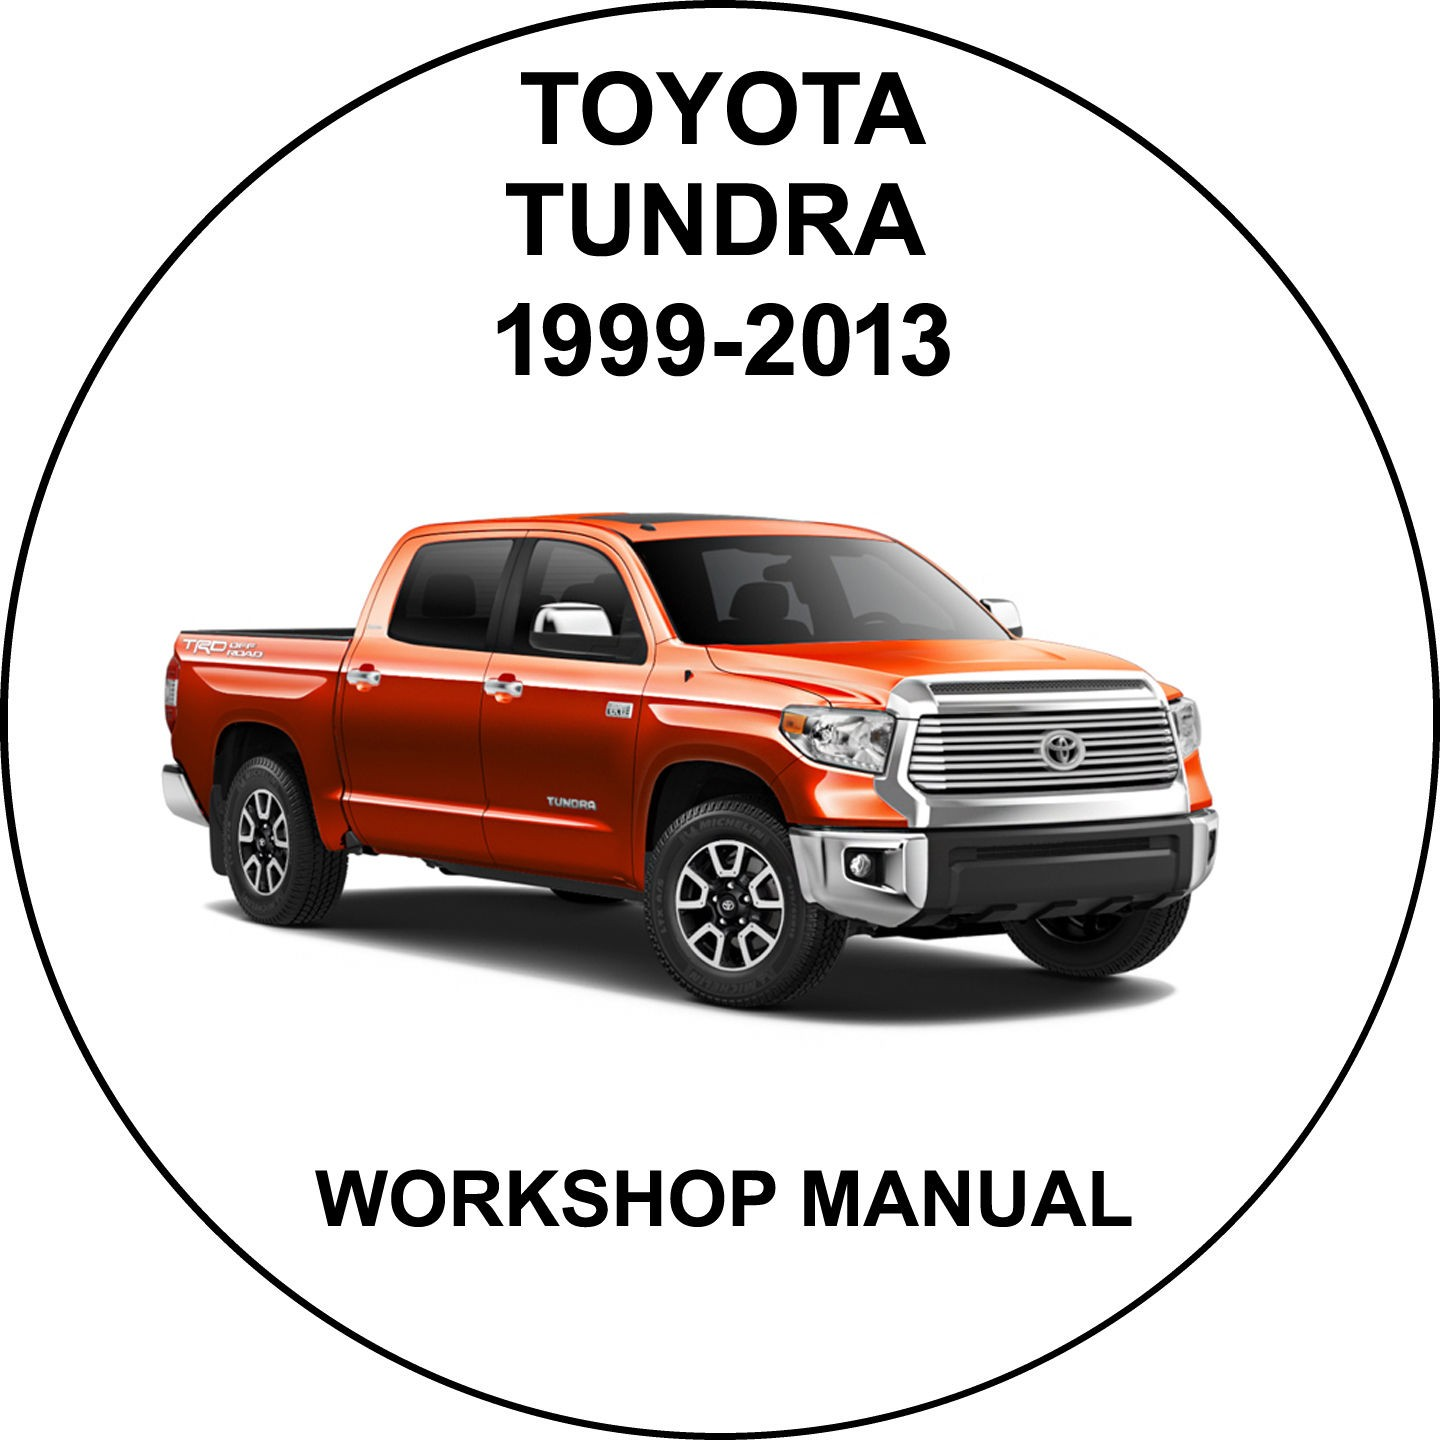 34 1999 Toyota Tacoma Parts Diagram